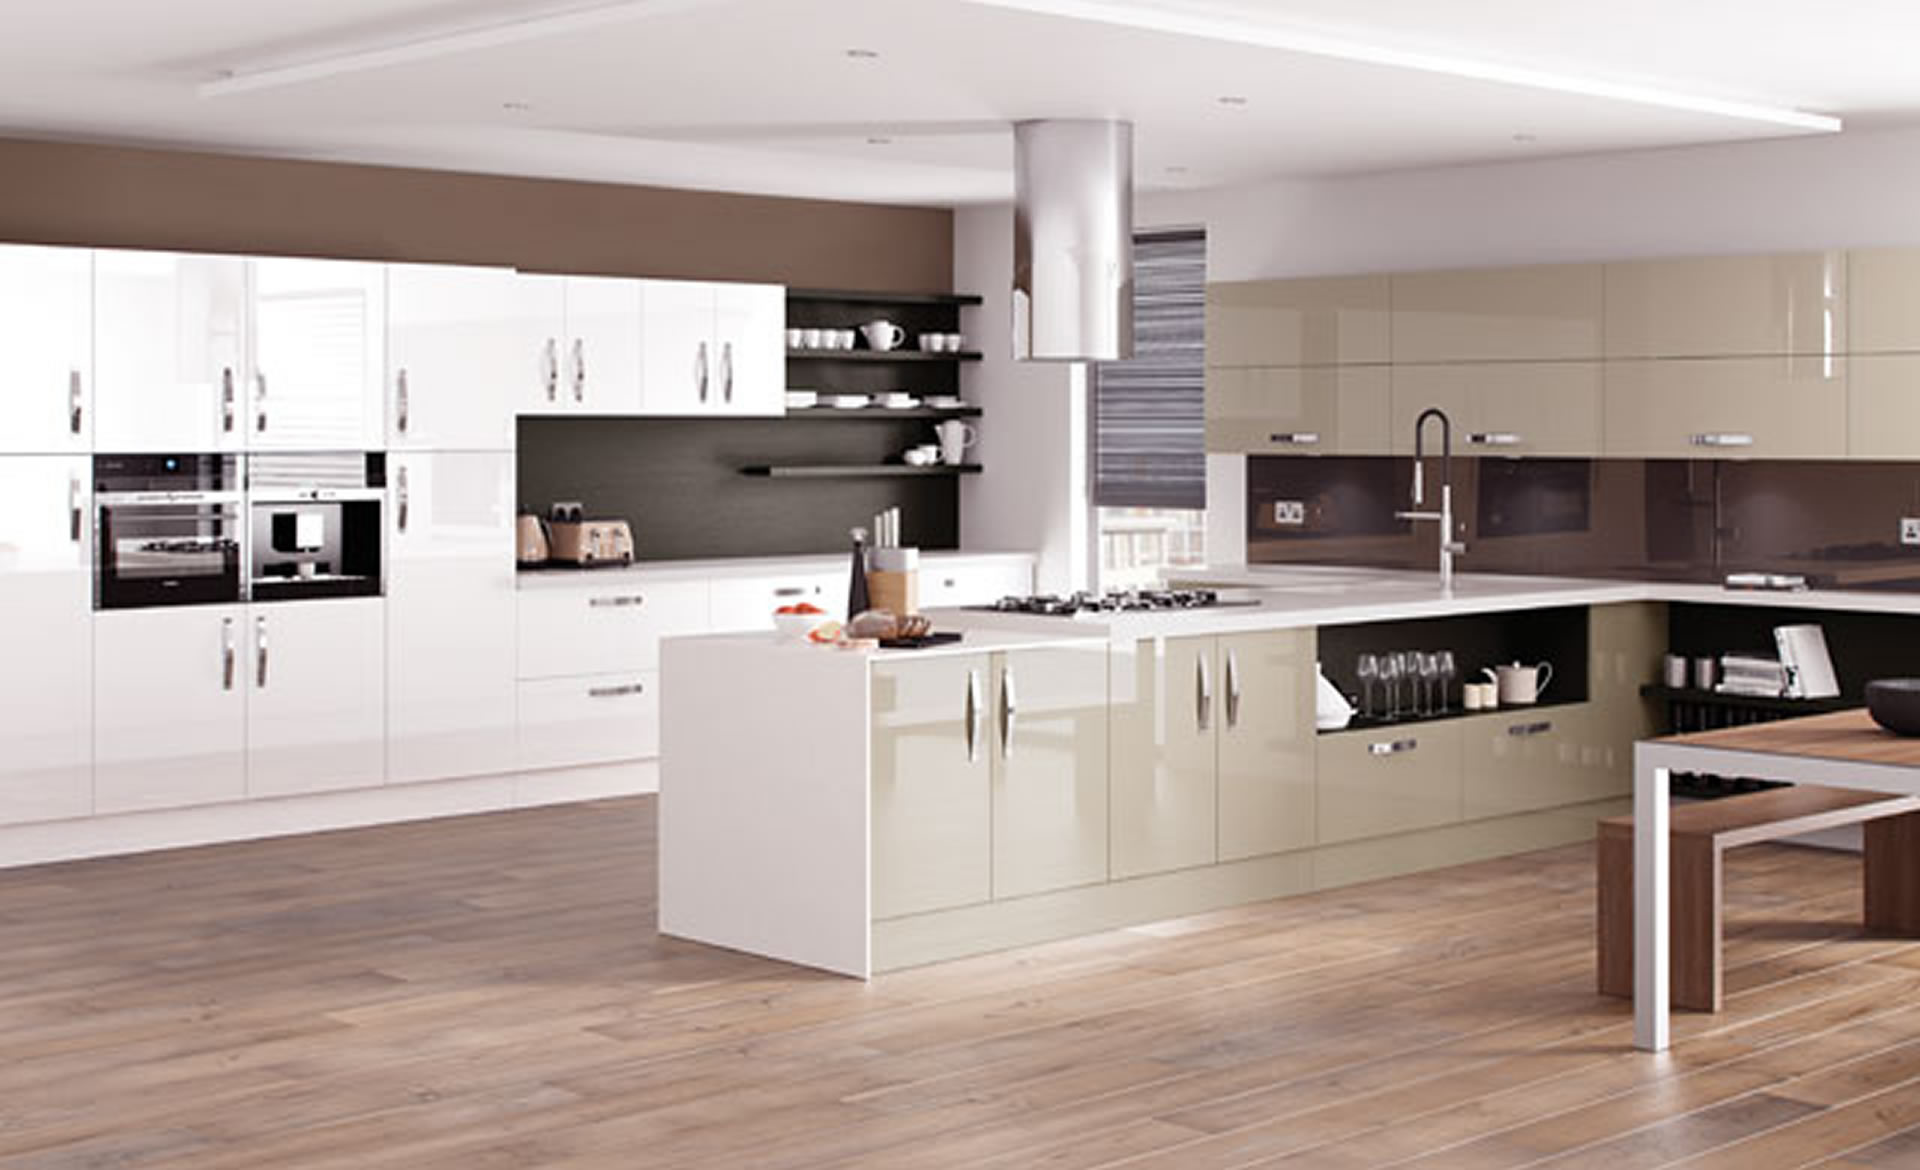 Kitchen designs astro gloss dakar and white - Stylish cooking ...